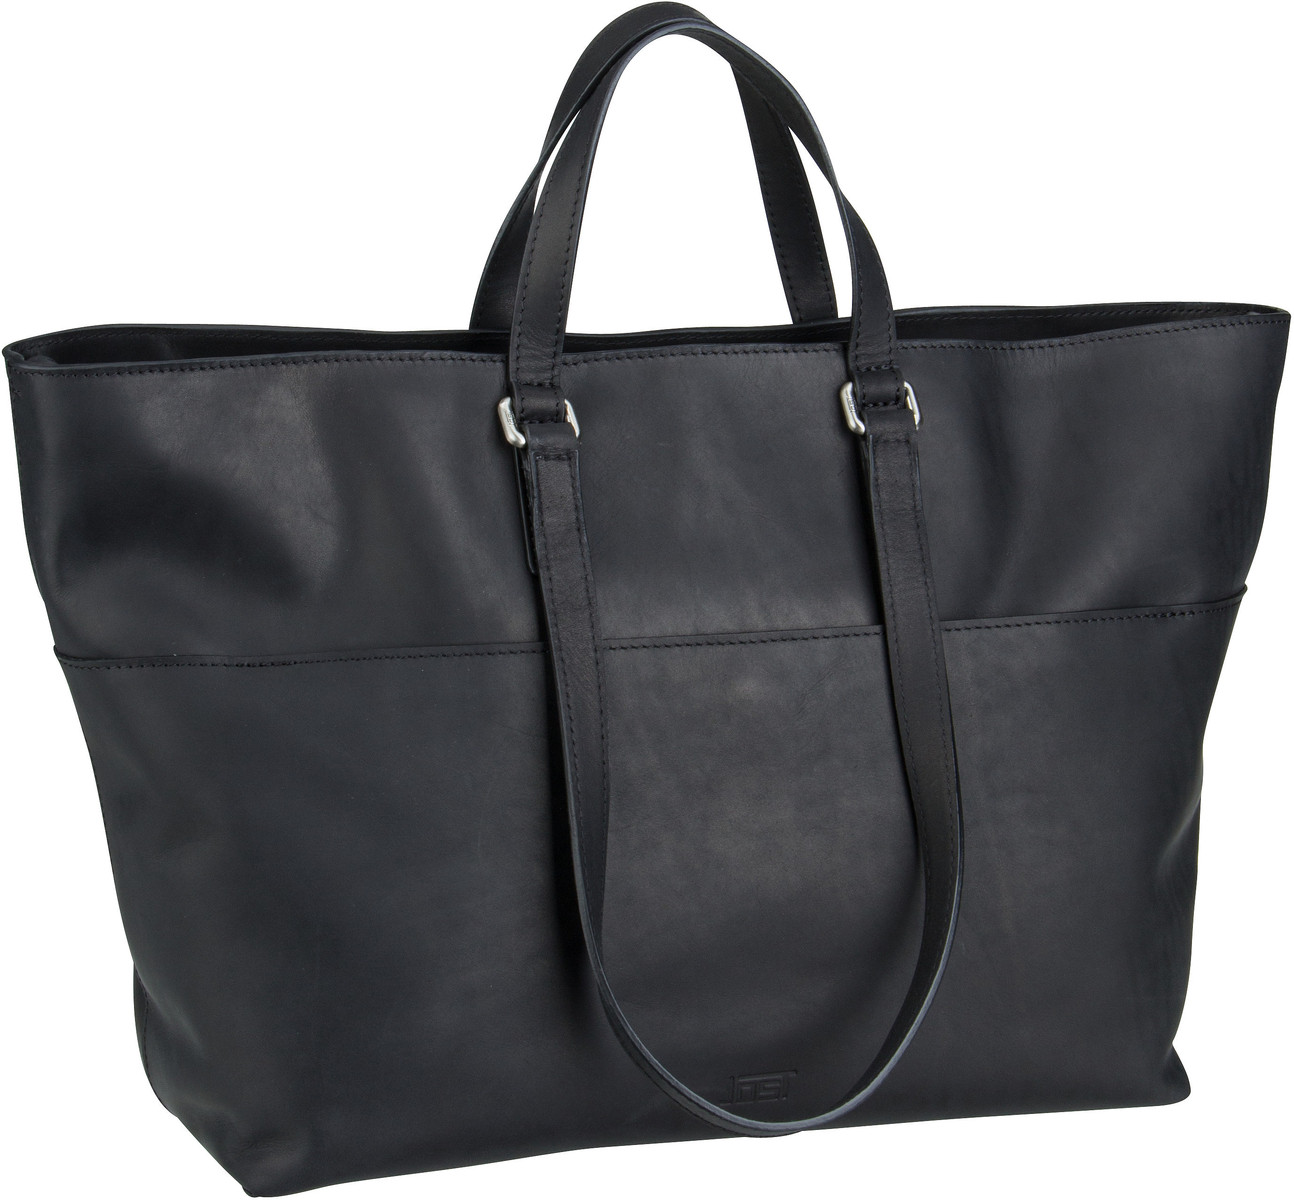 Handtasche Rana 1277 Shopper Black